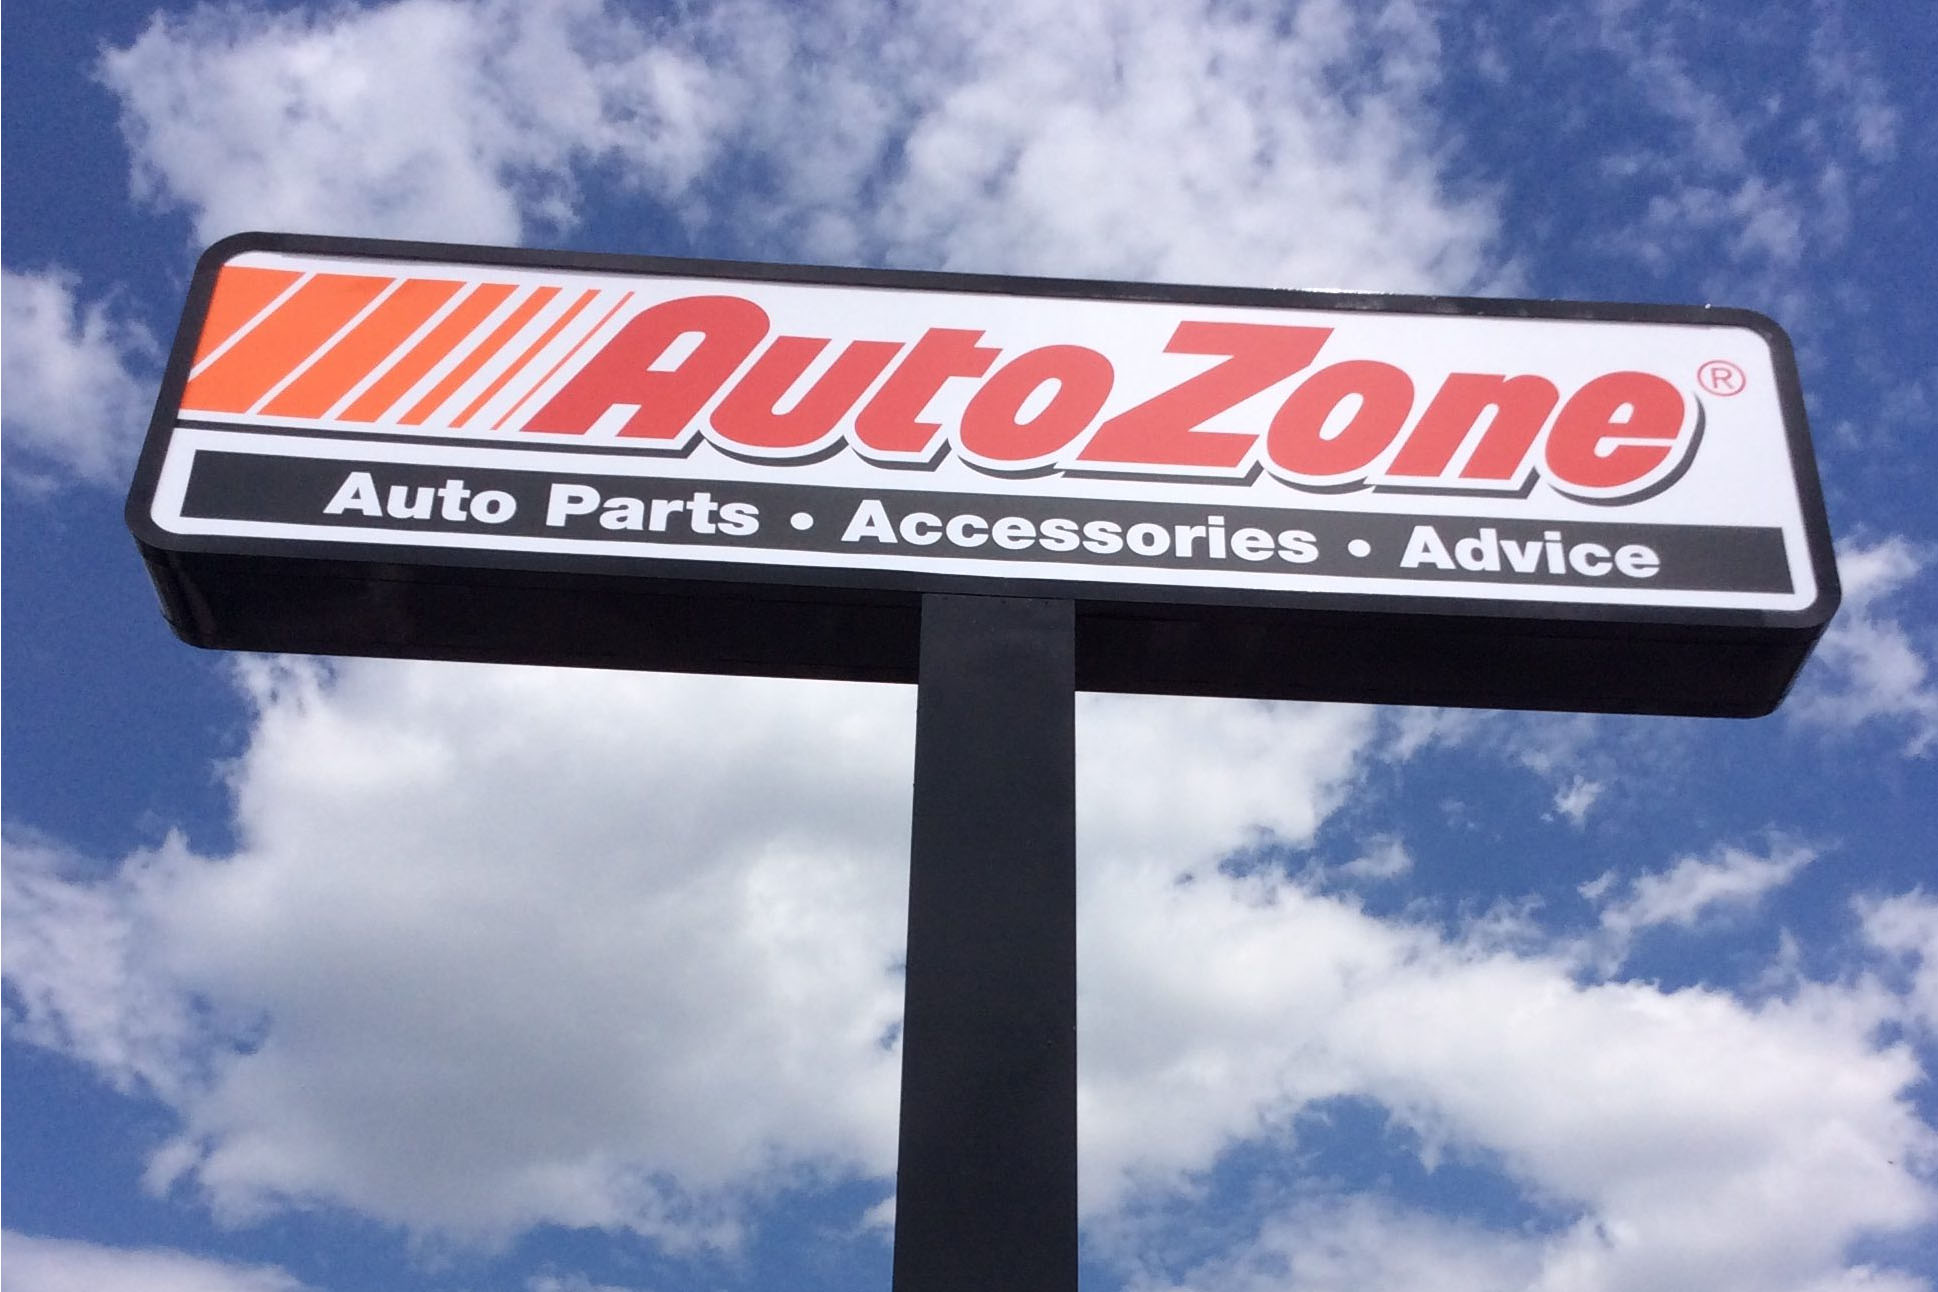 Exterior Signs   Indianapolis Sign Company   Custom Business Signs Pylon sign for Auto Zone in Indianapolis  Indiana